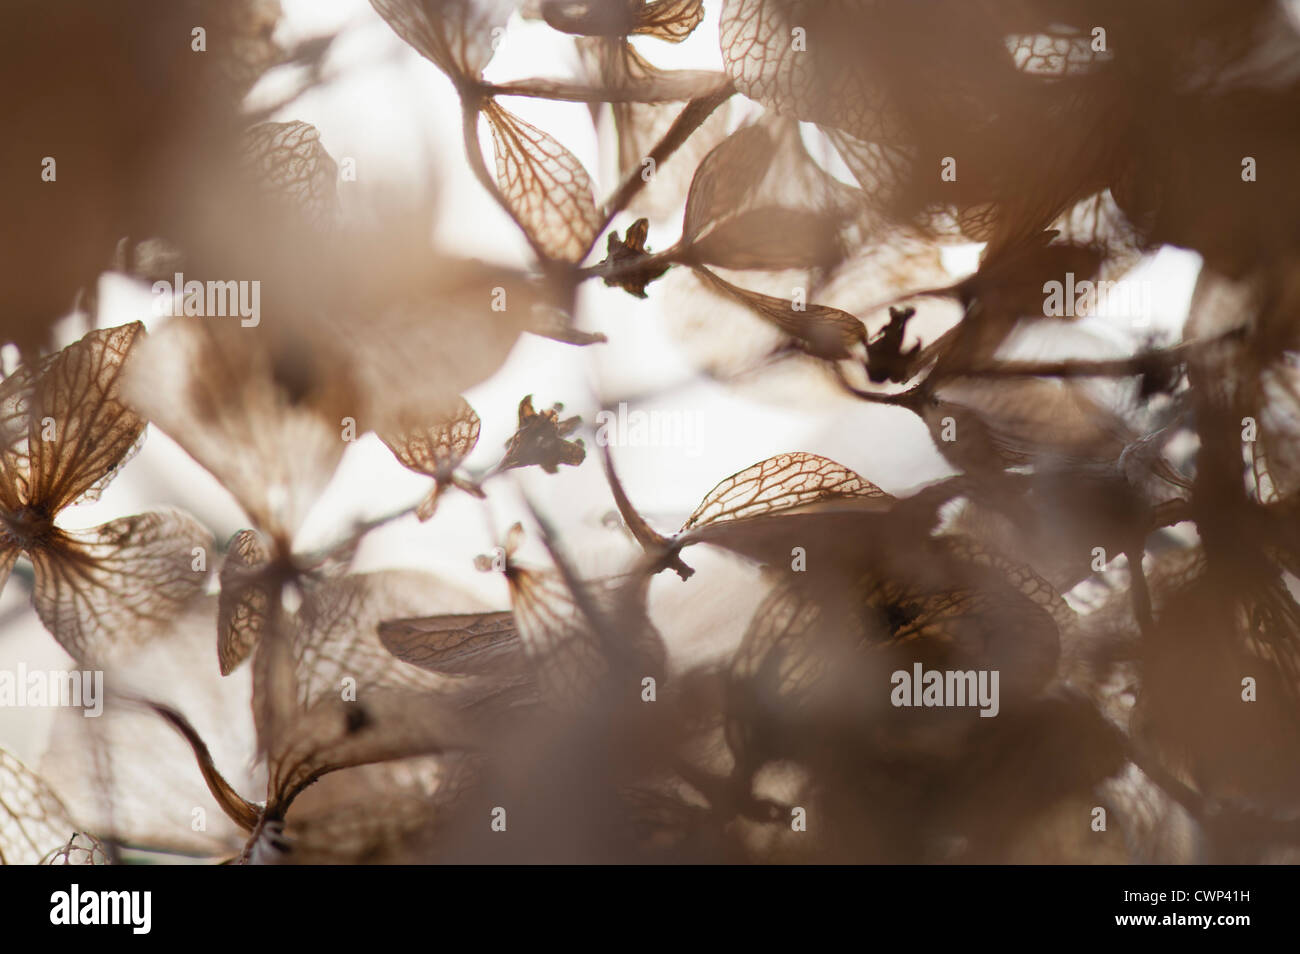 Brittle hydrangea flowers in winter - Stock Image